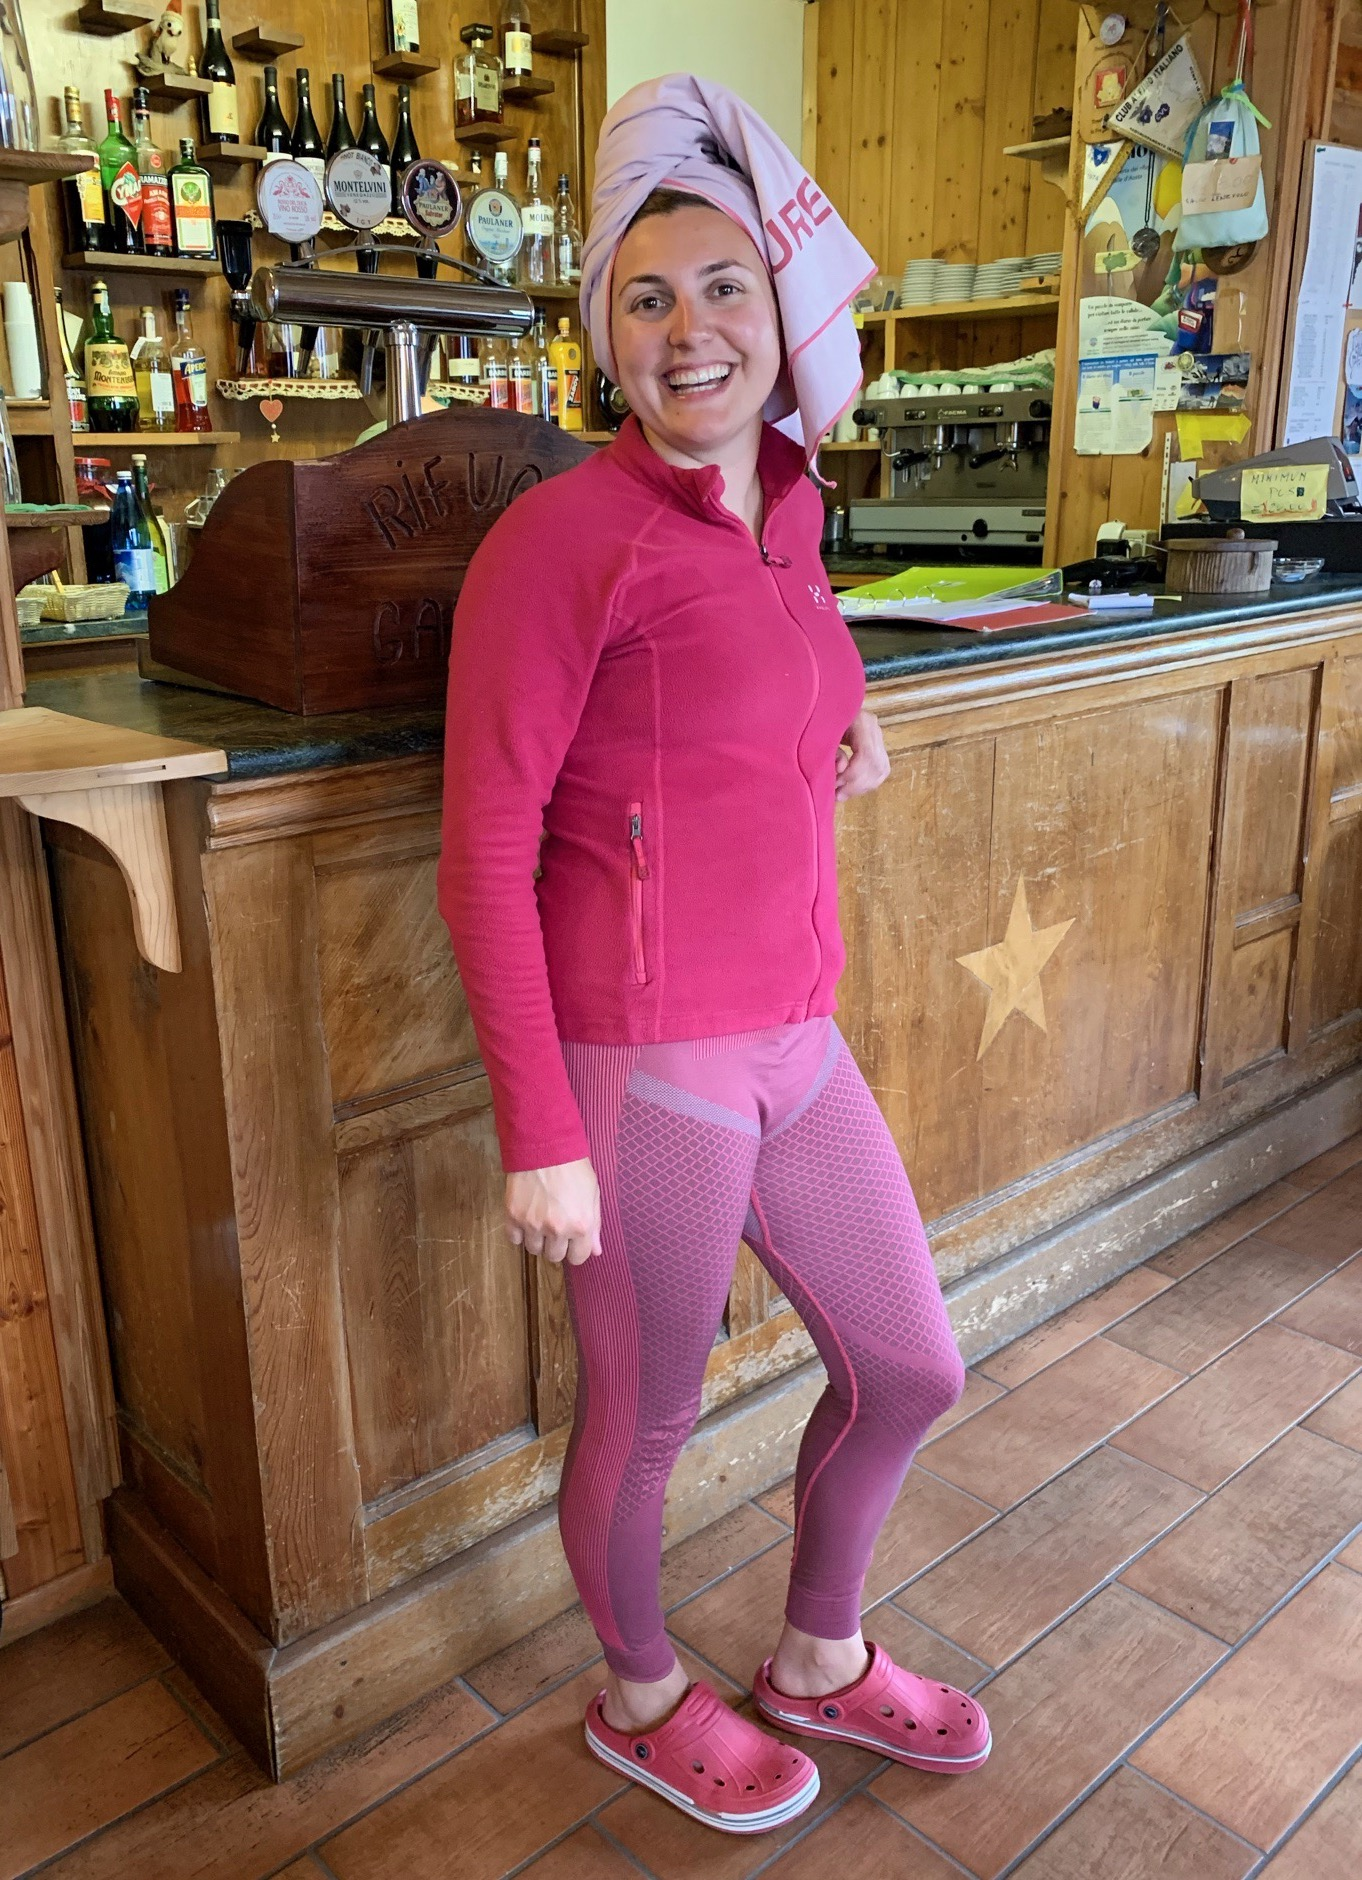 Nell at the Gabiet Mountain Hut dressed in full pink with hair in a pink turban after a shower